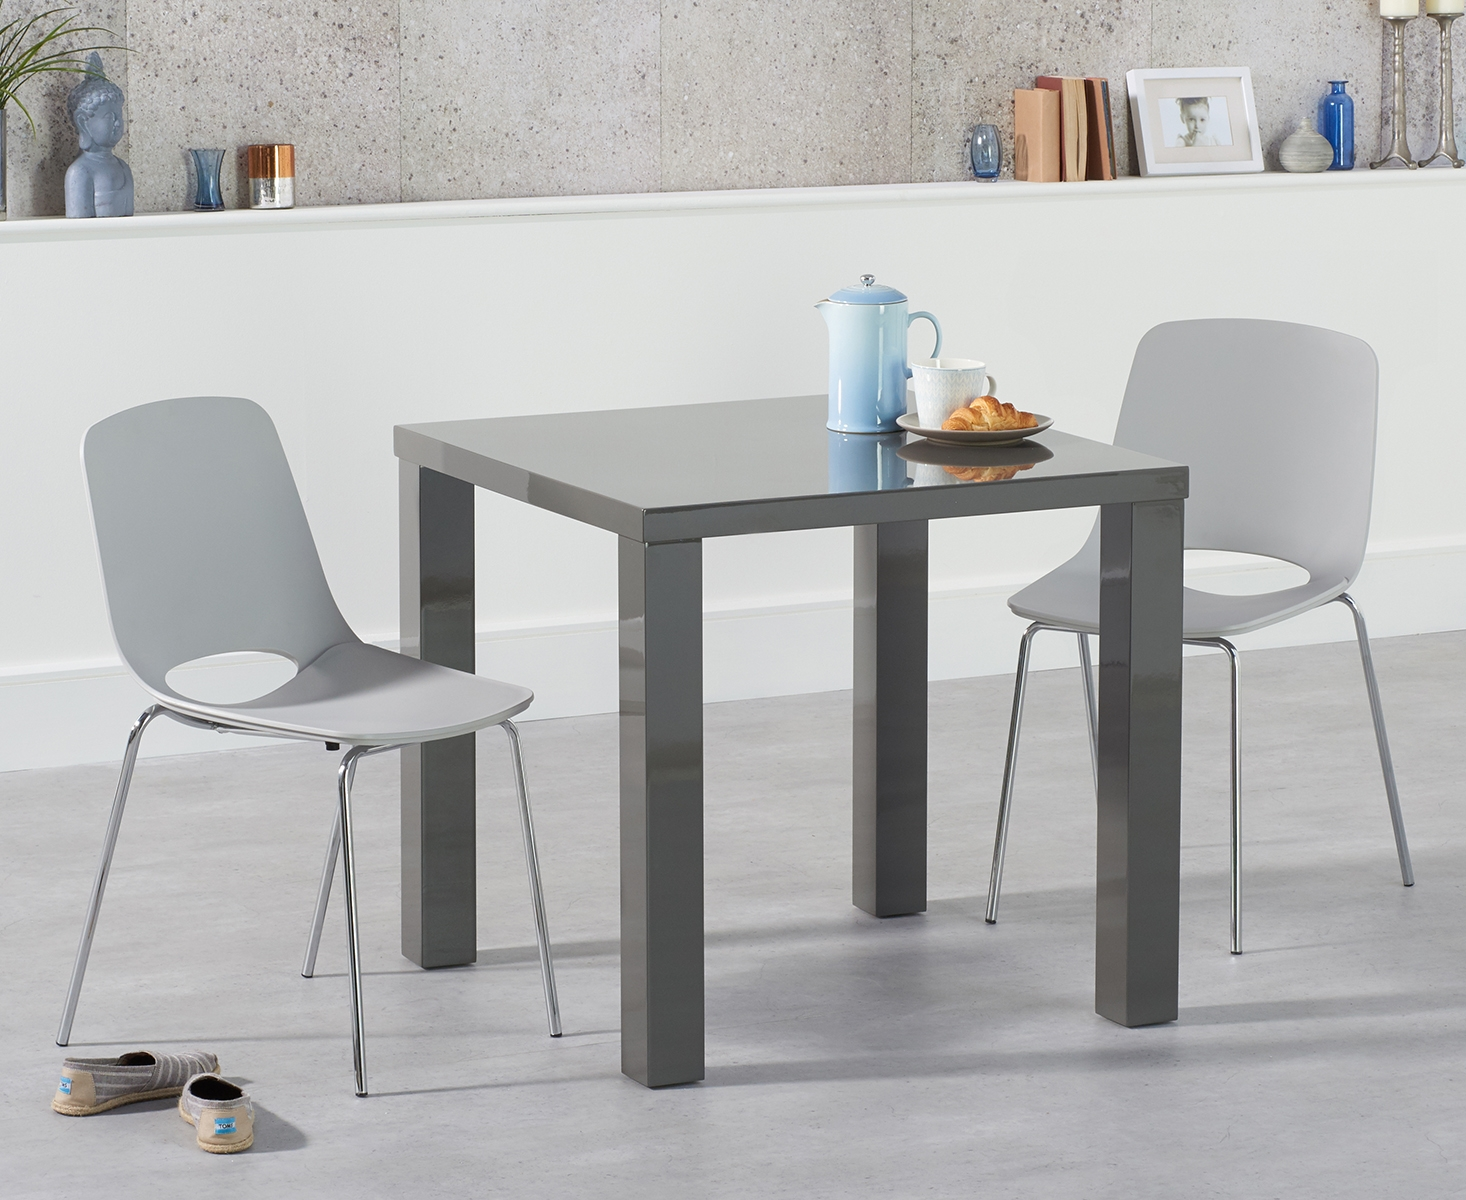 An image of Atlanta 80cm Dark Grey High Gloss Dining Table with Nordic Chrome Leg Chairs